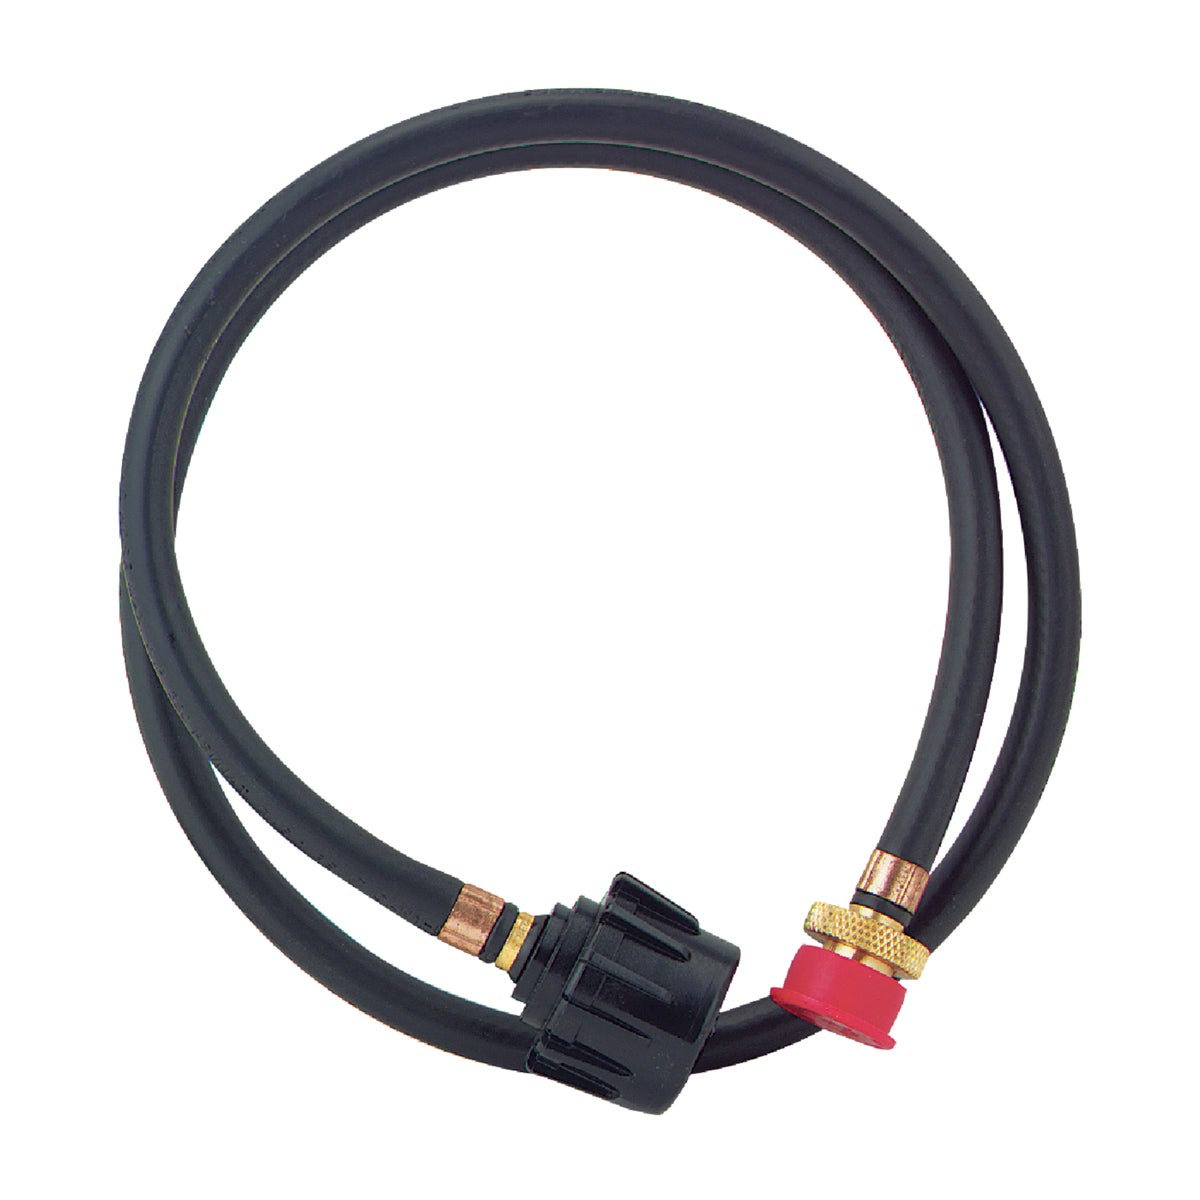 6'WEBR Q LP HOSE ADAPTER